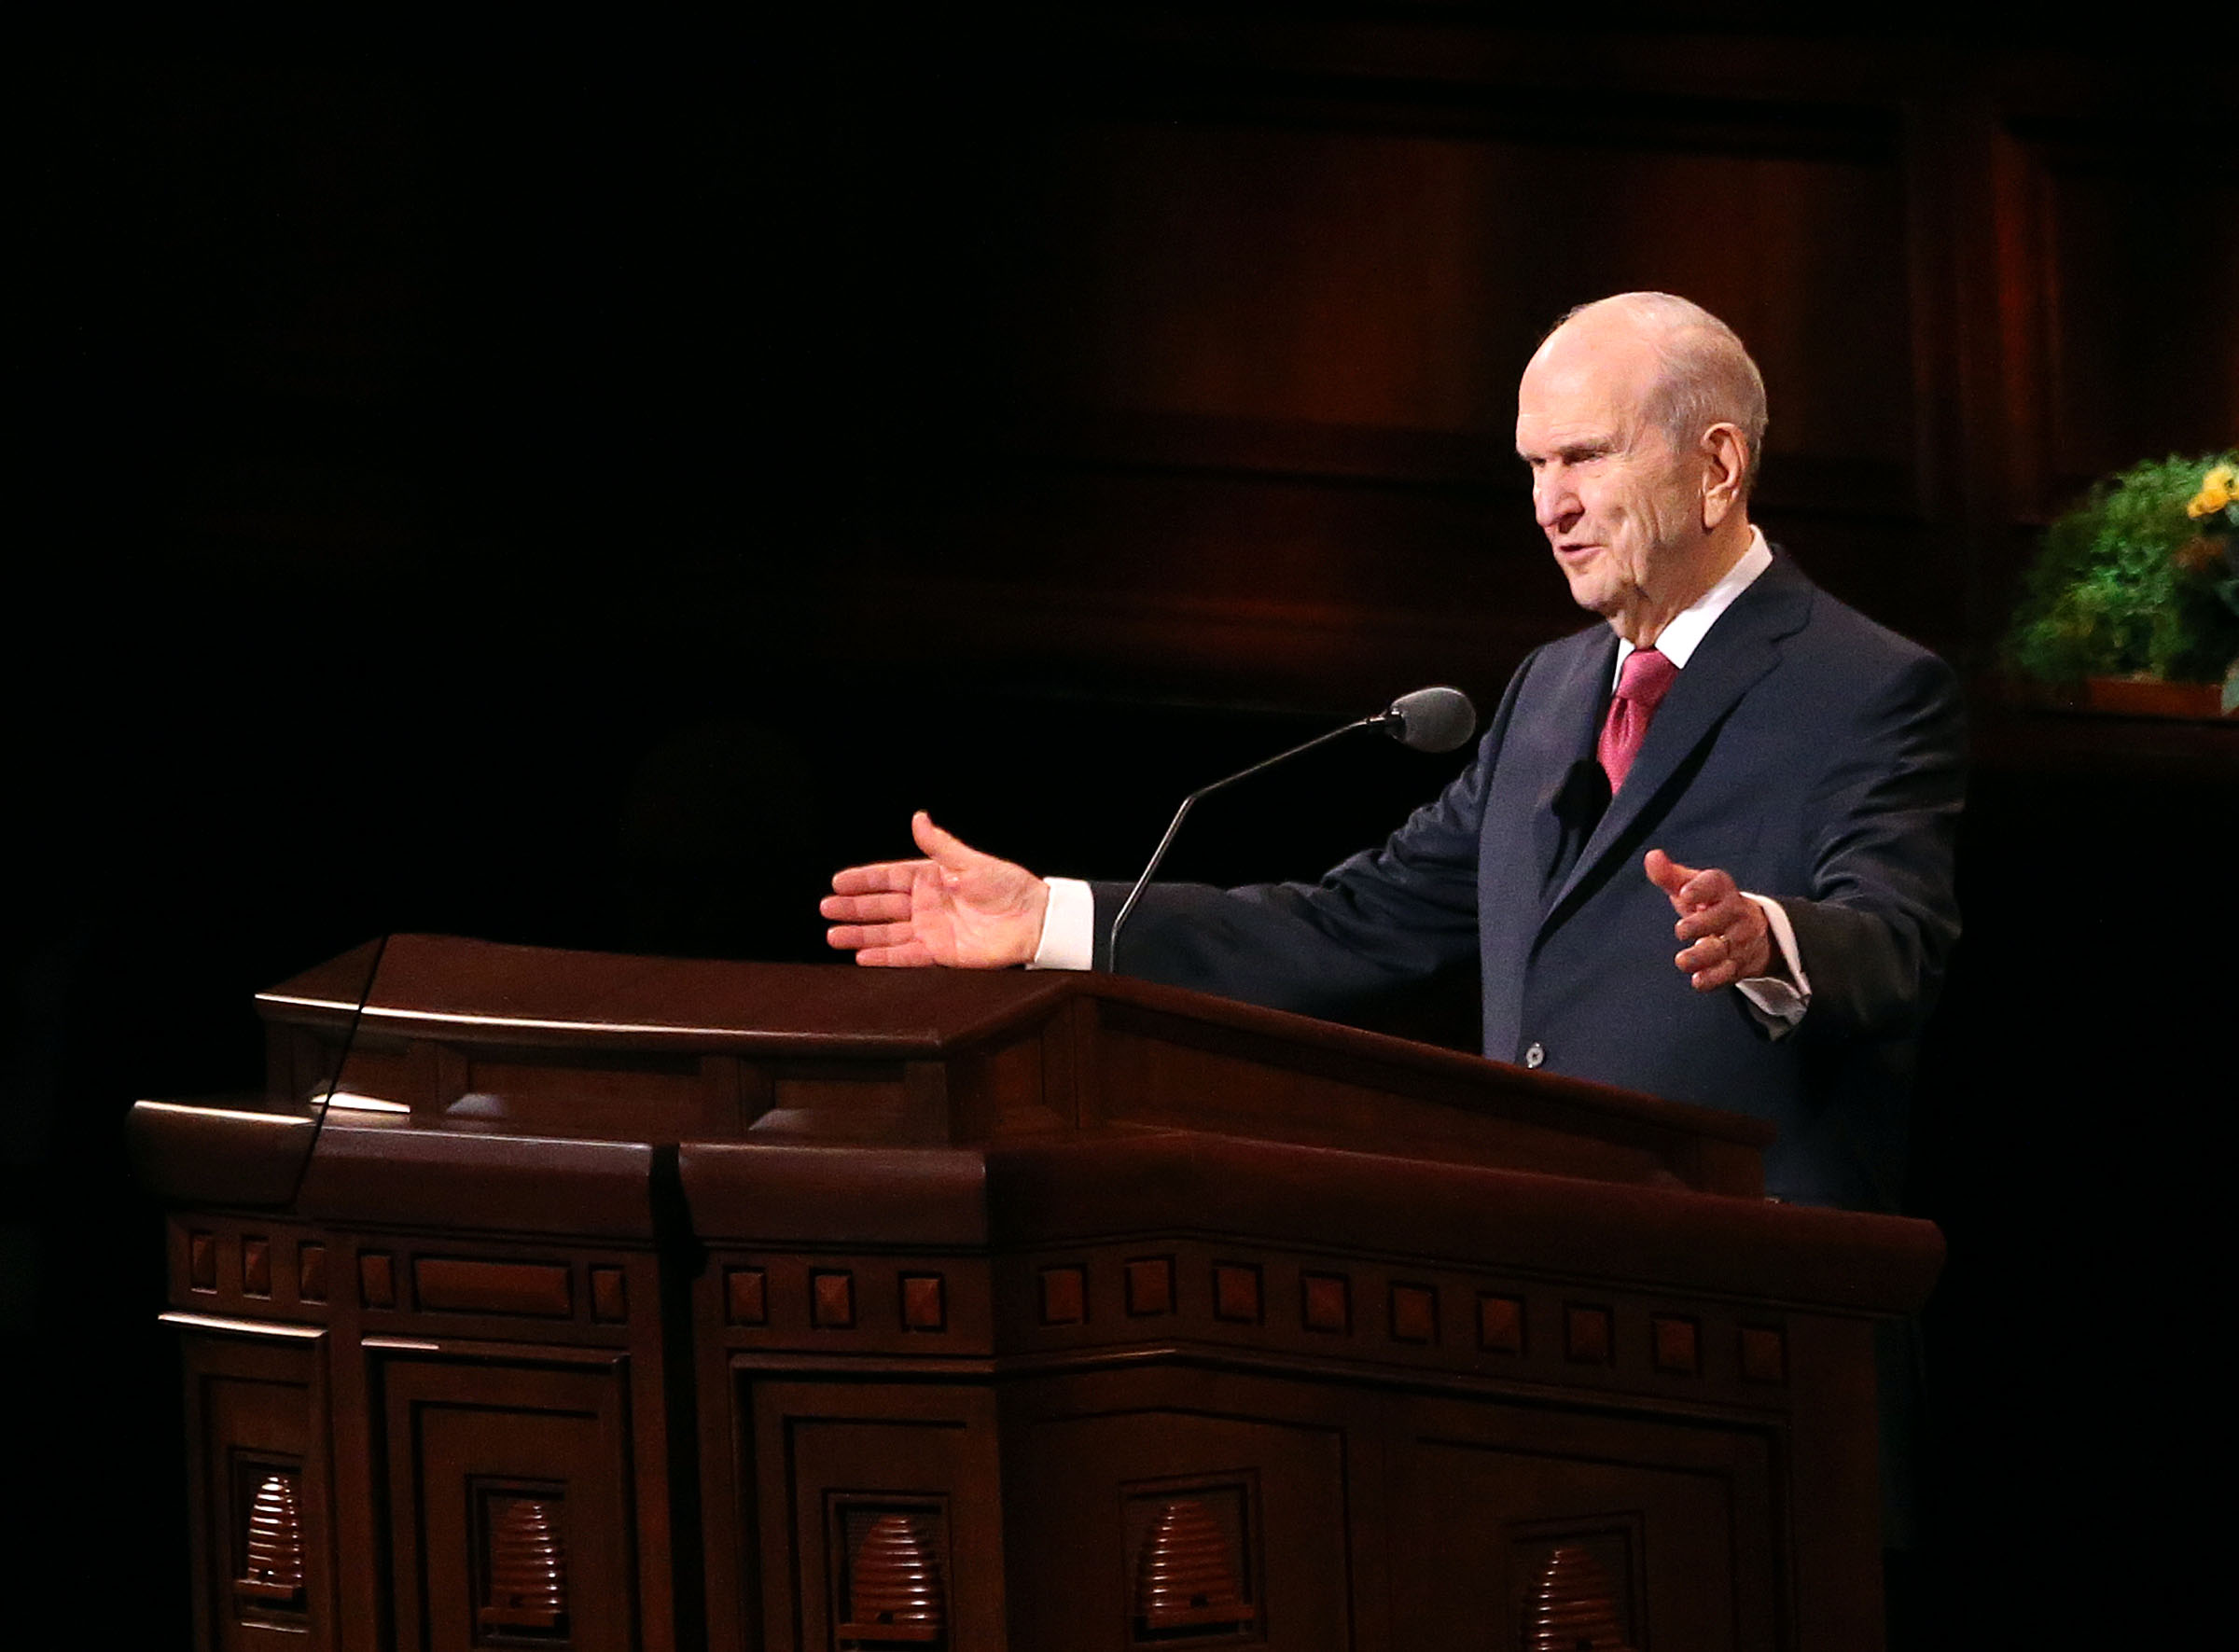 President Russell M. Nelson speaks during the morning session of the 188th Annual General Conference of The Church of Jesus Christ of Latter-day Saints at the Conference Center in Salt Lake City on Sunday, April 1, 2018.